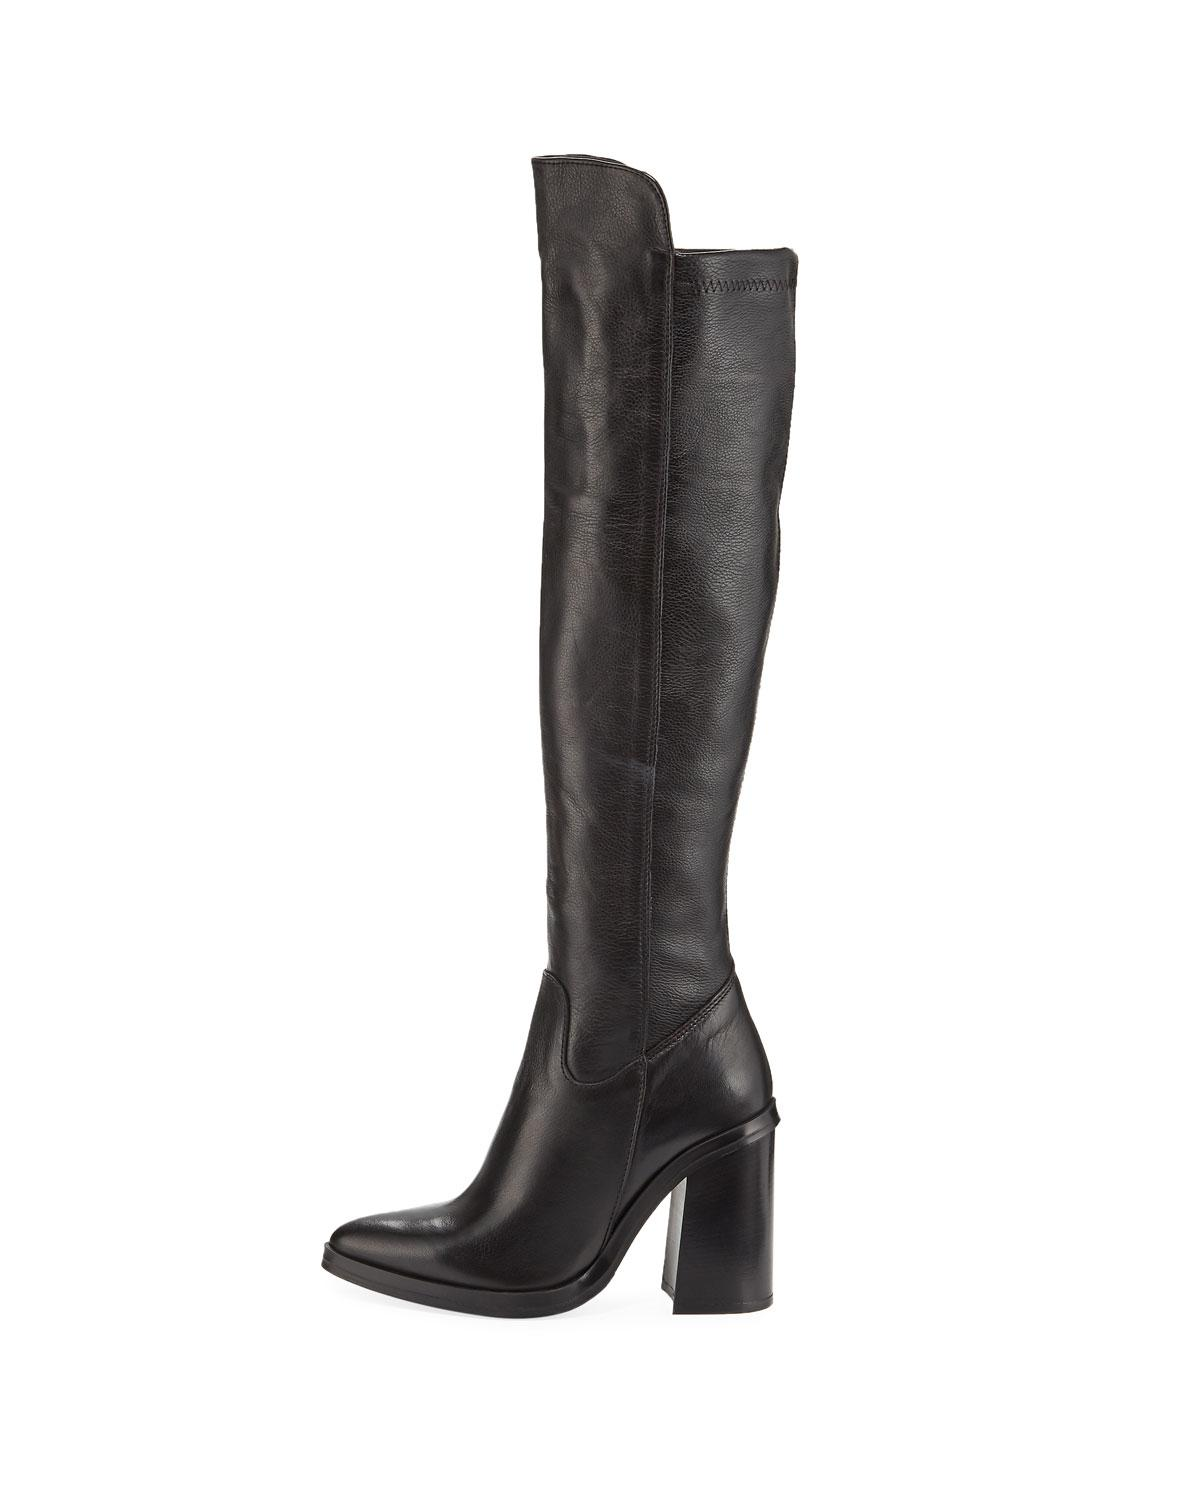 ce47b7d657 Charles David Shania Tall Leather Point-toe Boots in Black - Lyst